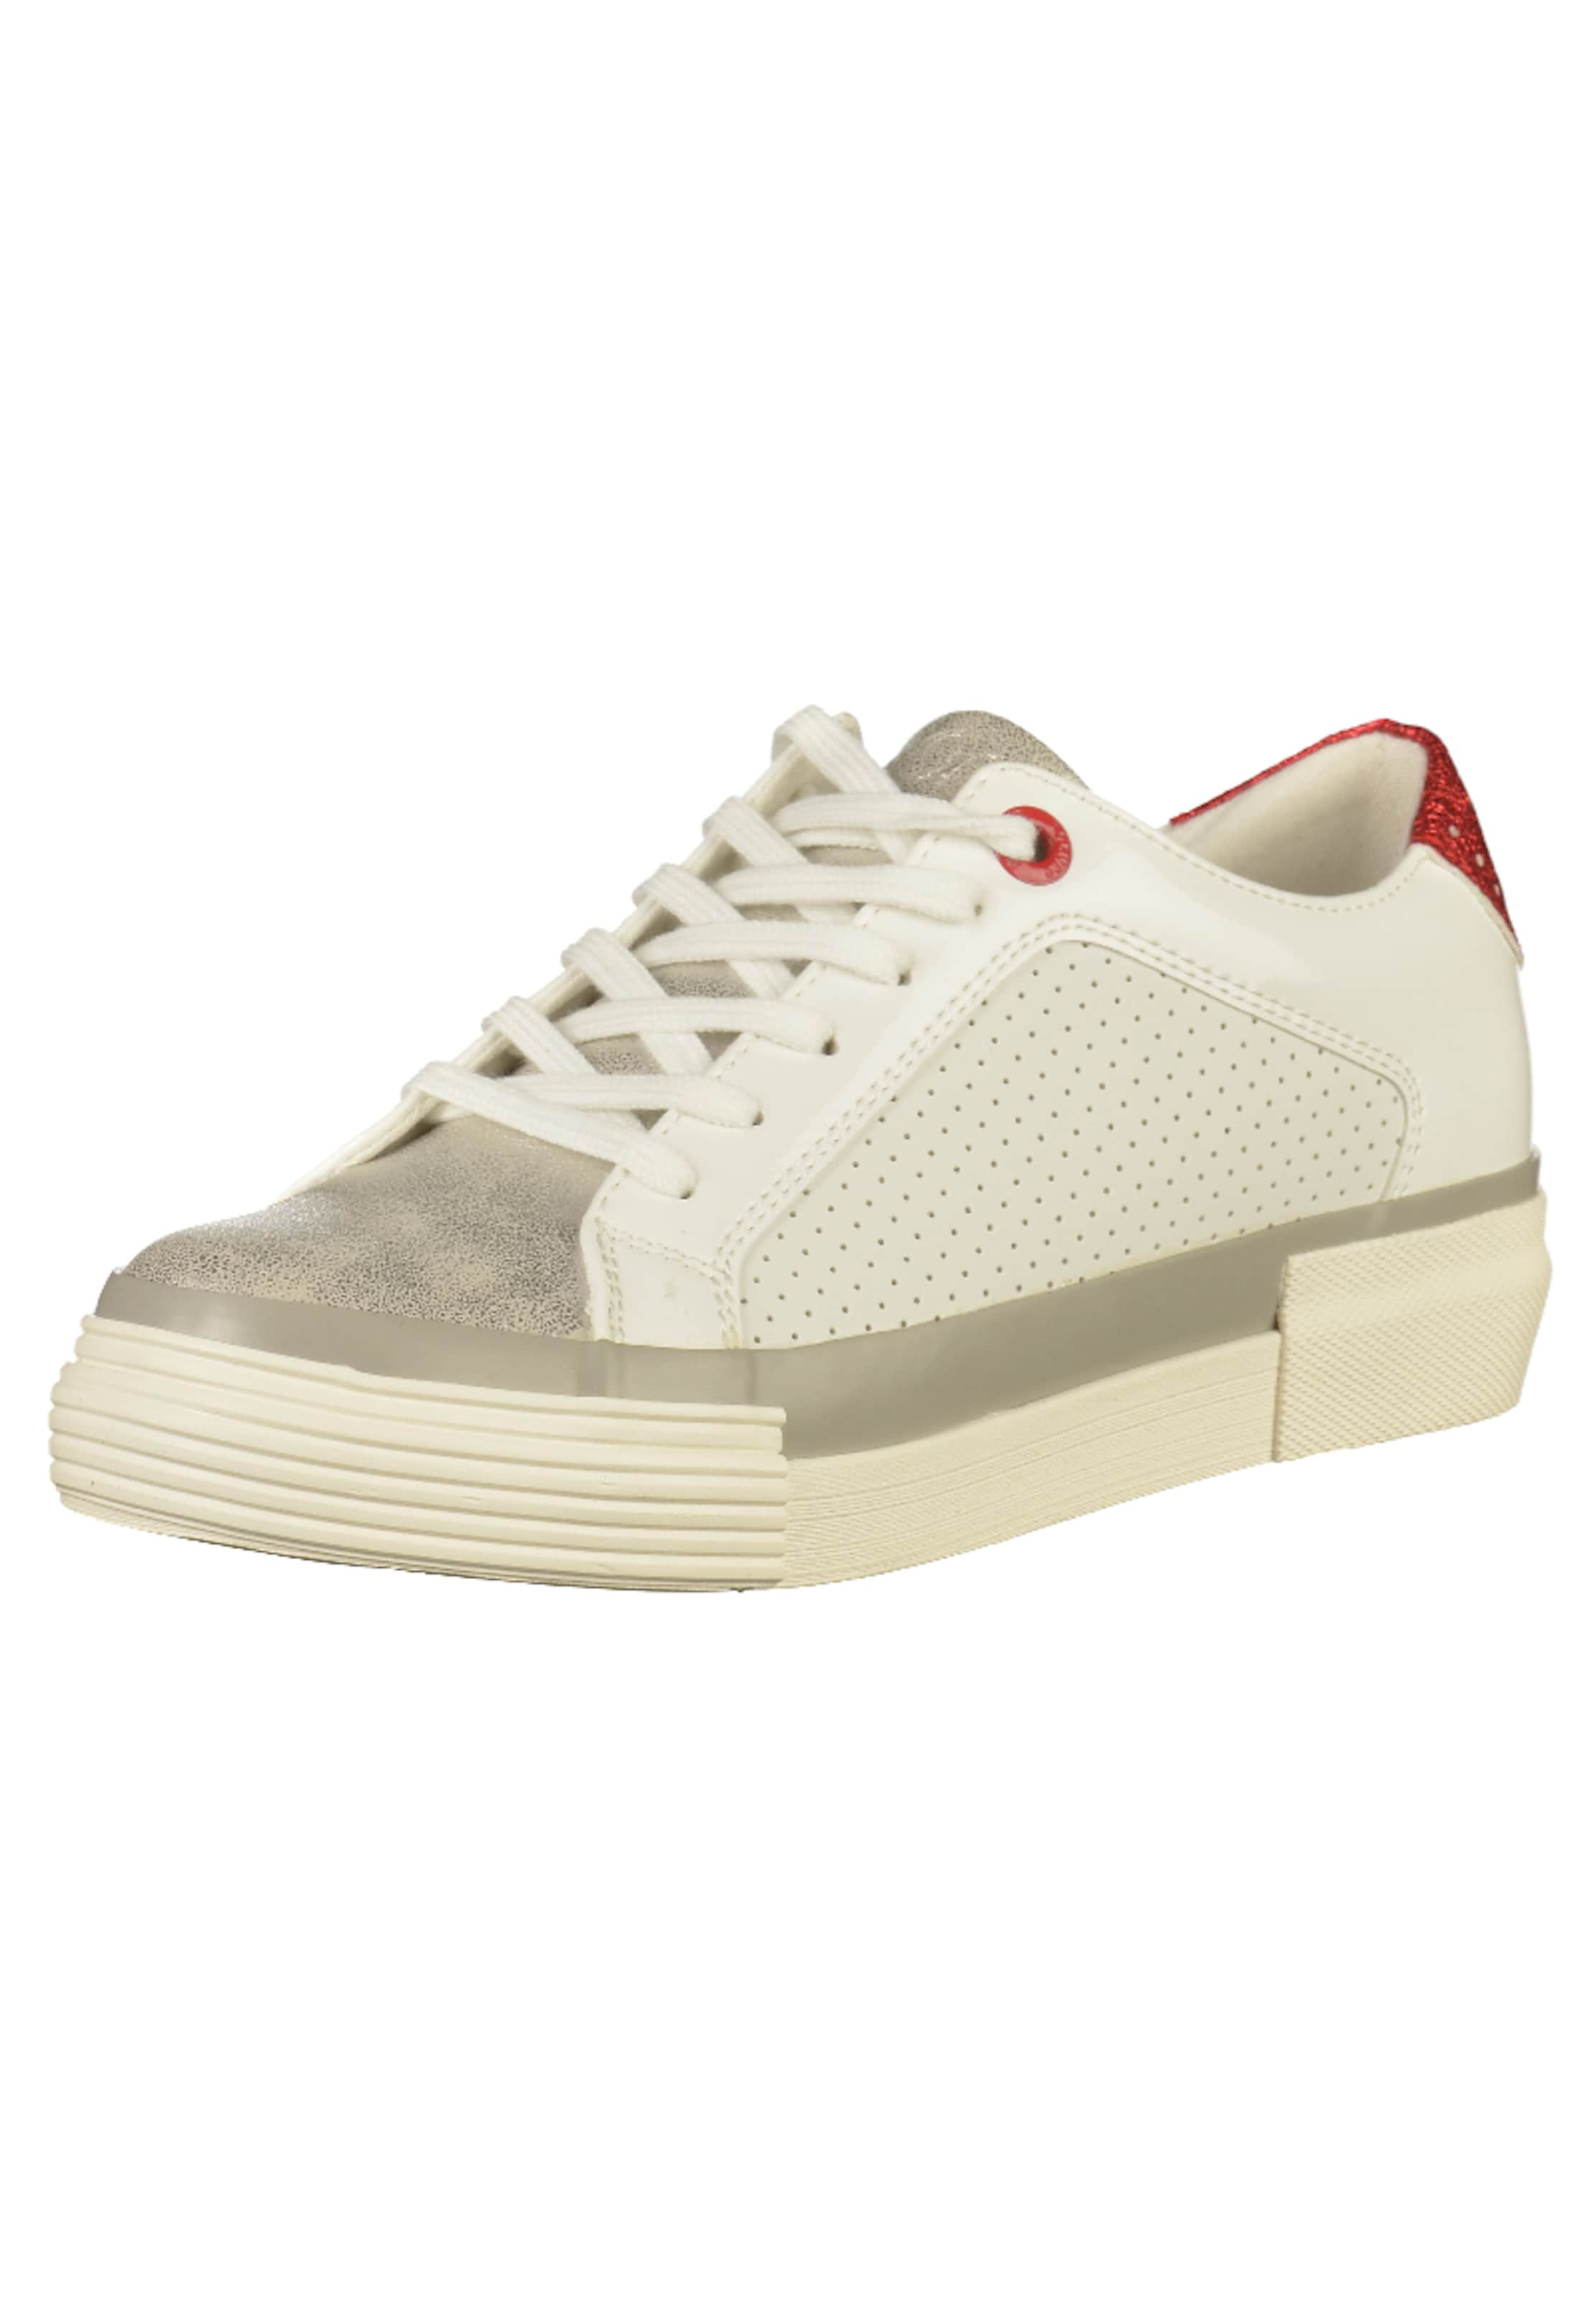 Red oliver RotWeiß S Label Sneaker In ybYf76g